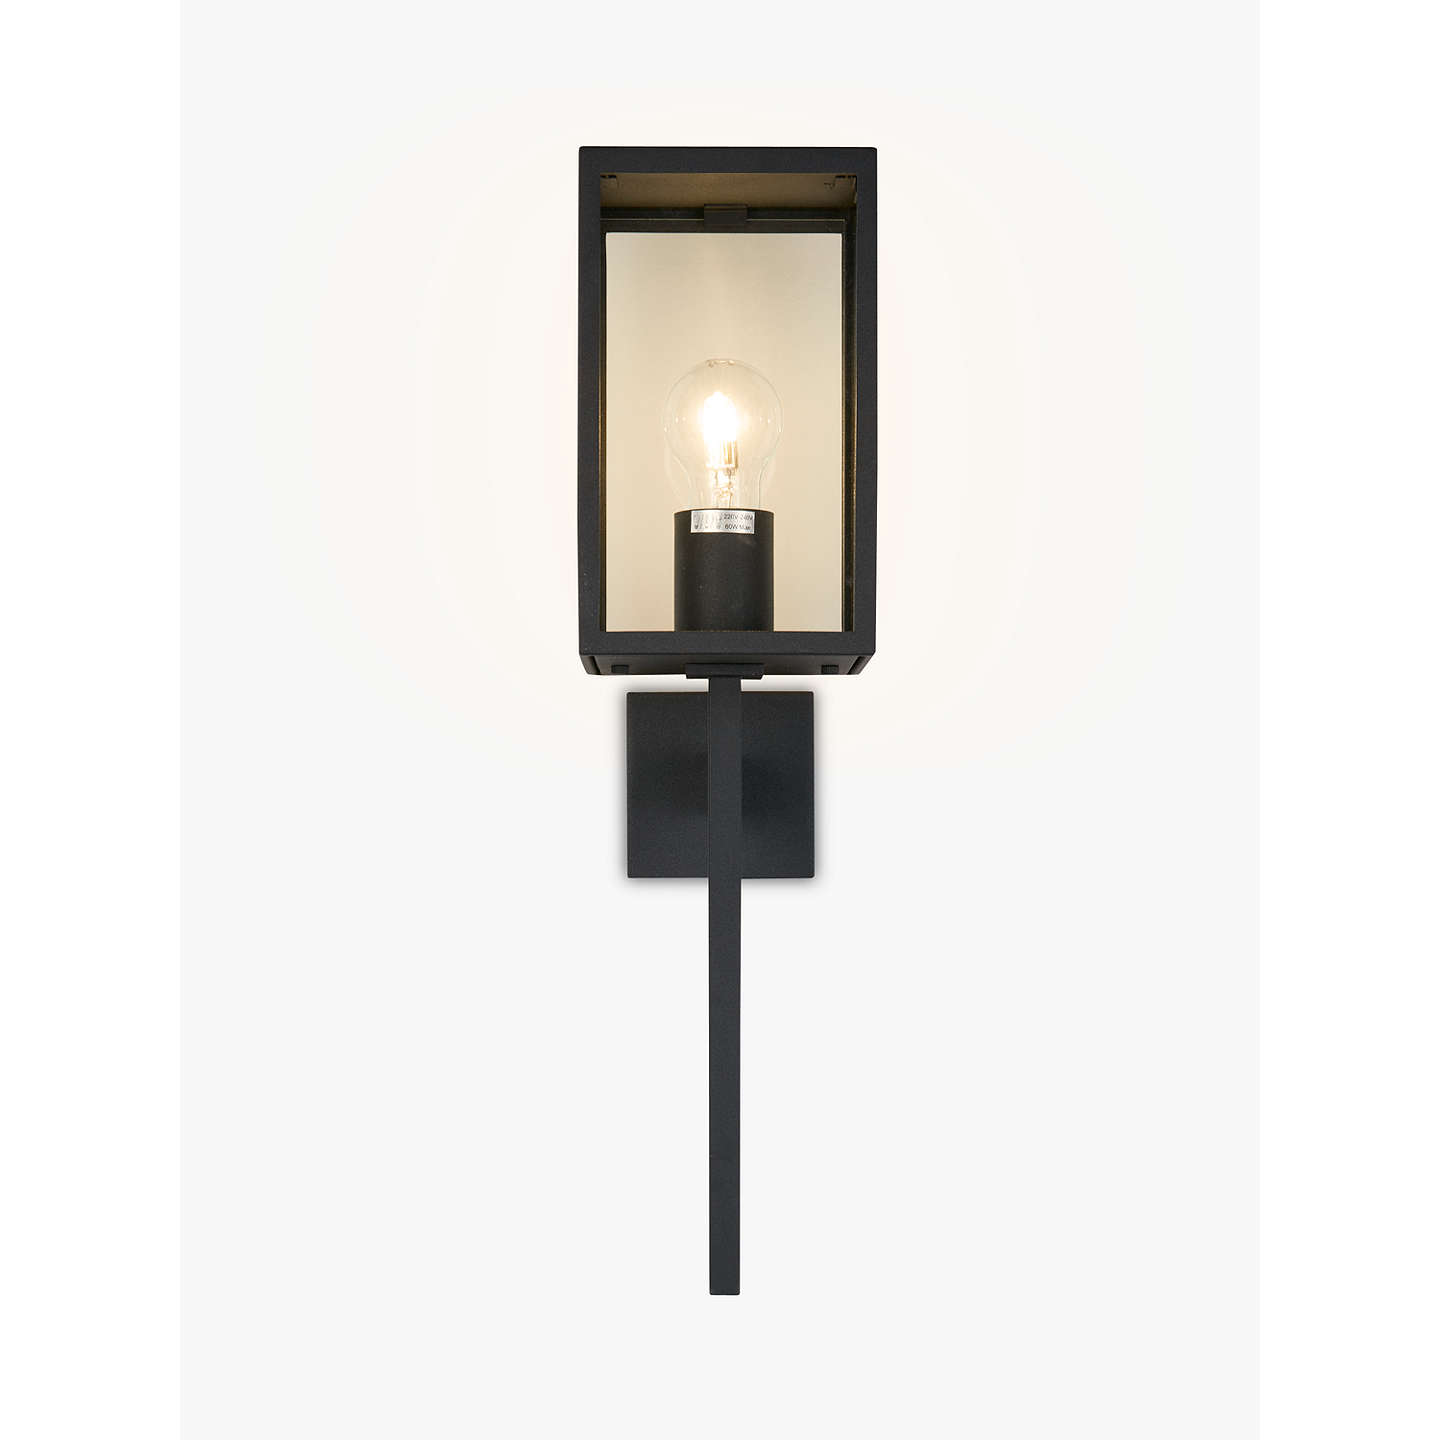 Astro coach lantern 130 outdoor light black at john lewis buyastro coach lantern 130 outdoor light black online at johnlewis mozeypictures Image collections